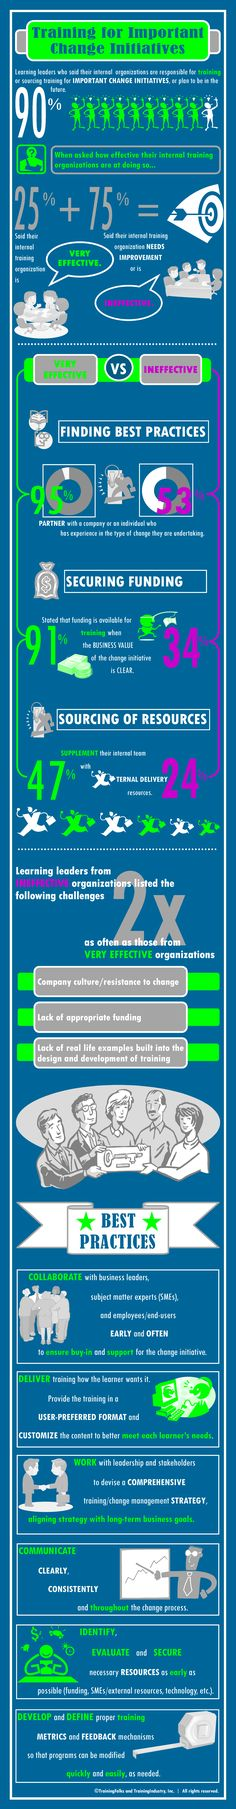 #Training for important change #initiatives #learning #leaders #infograph #sourcing